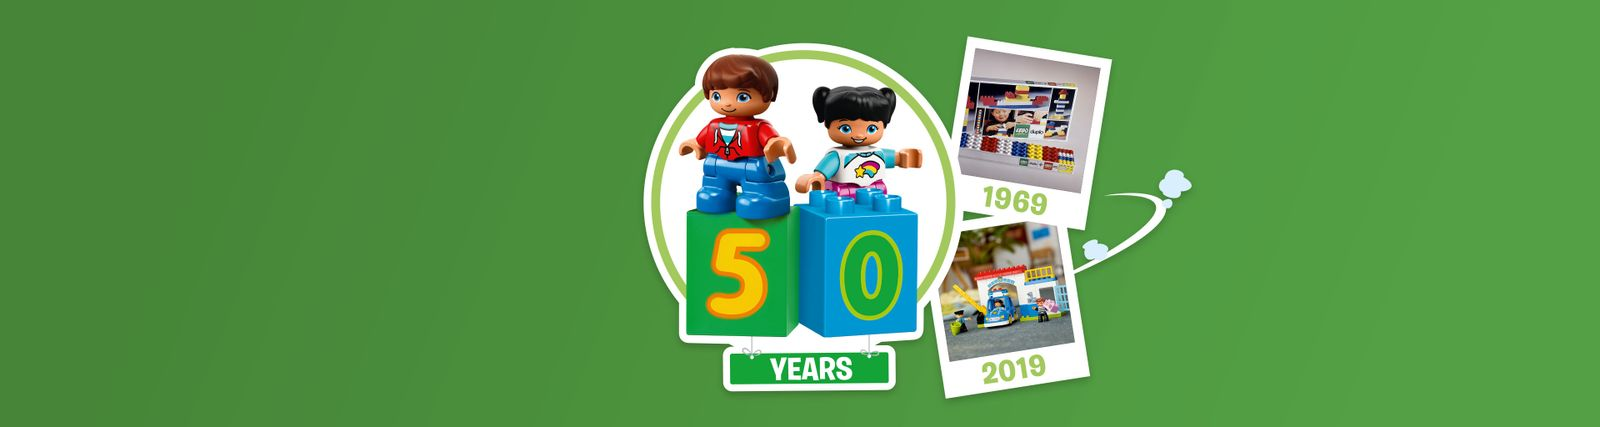 Lego Com Uk Inspire And Develop The Builders Of Tomorrow